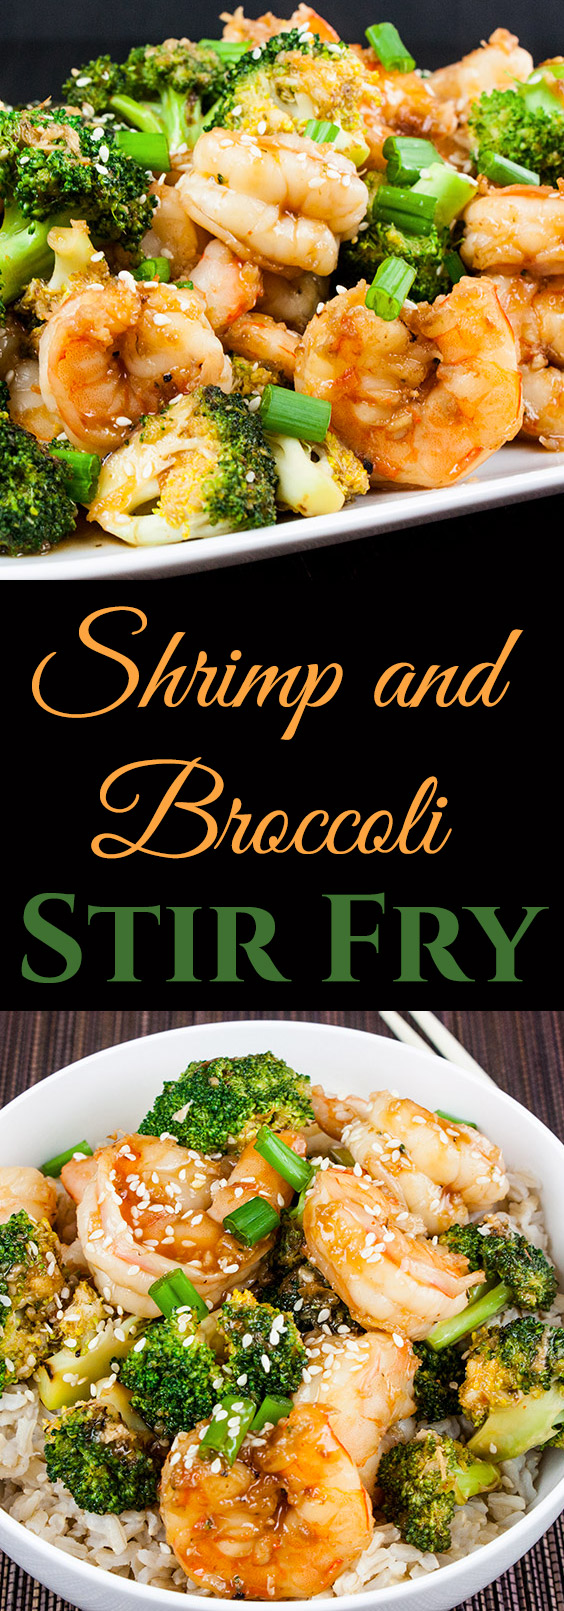 Shrimp and Broccoli Stir Fry - Ready in less than 30 minutes. Healthier and way tastier than takeout. Simple, satisfying and down right tasty! #healthy #easy #fast